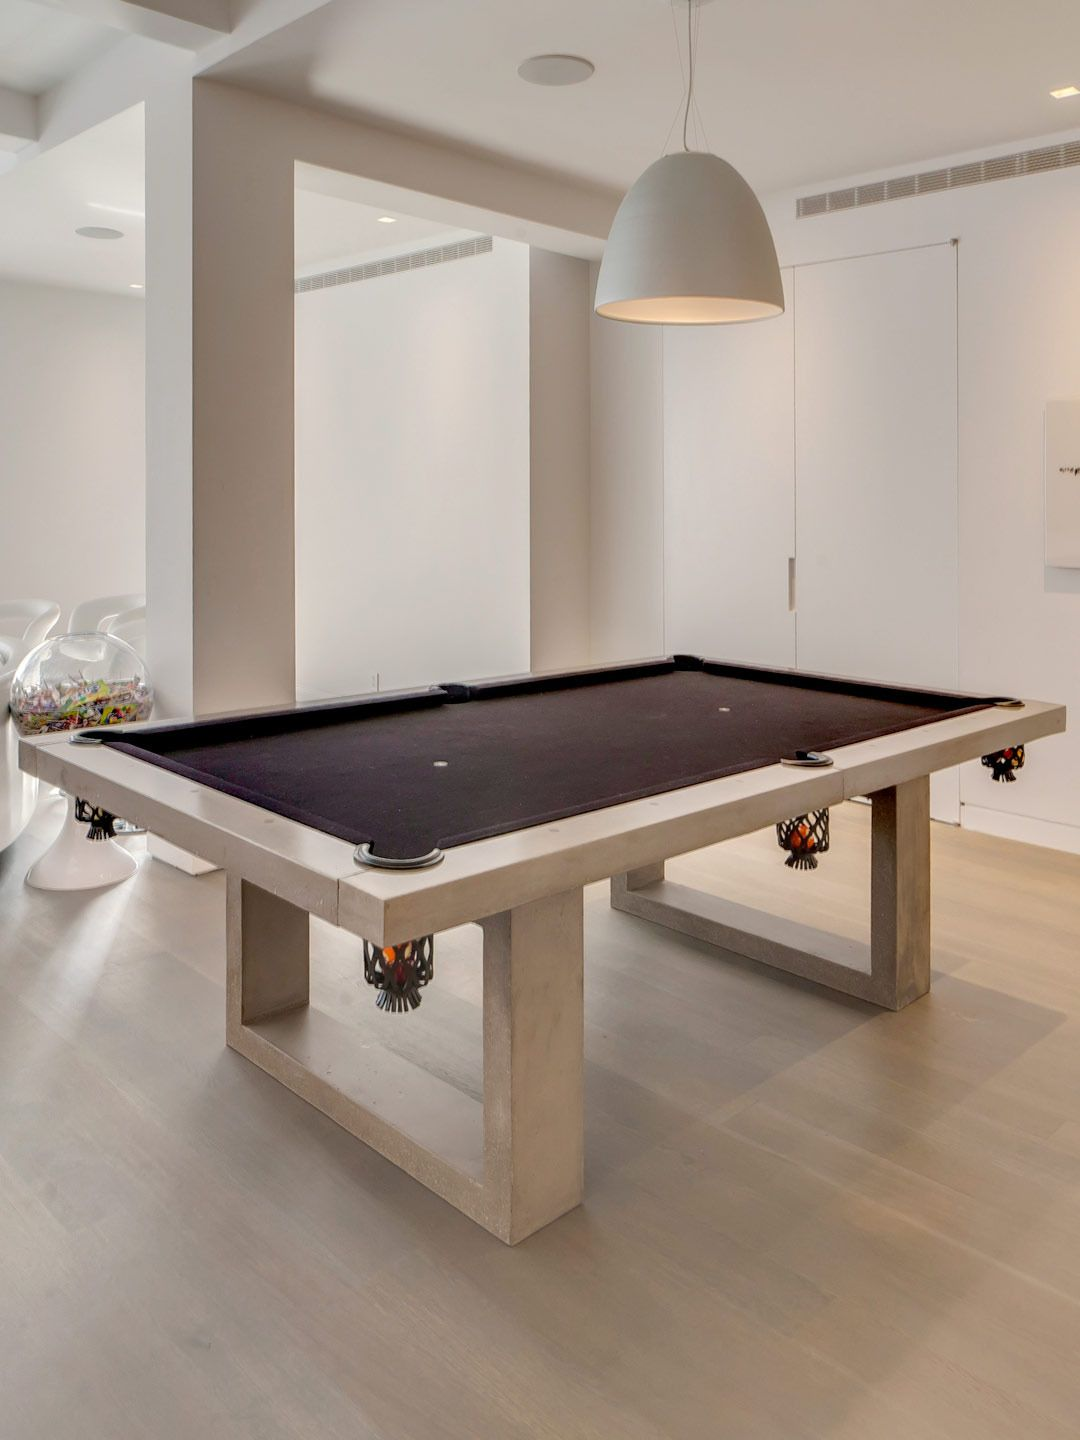 Best 25 Contemporary Houses Ideas On Pinterest: Best 25+ Contemporary Pool Table Lights Ideas On Pinterest